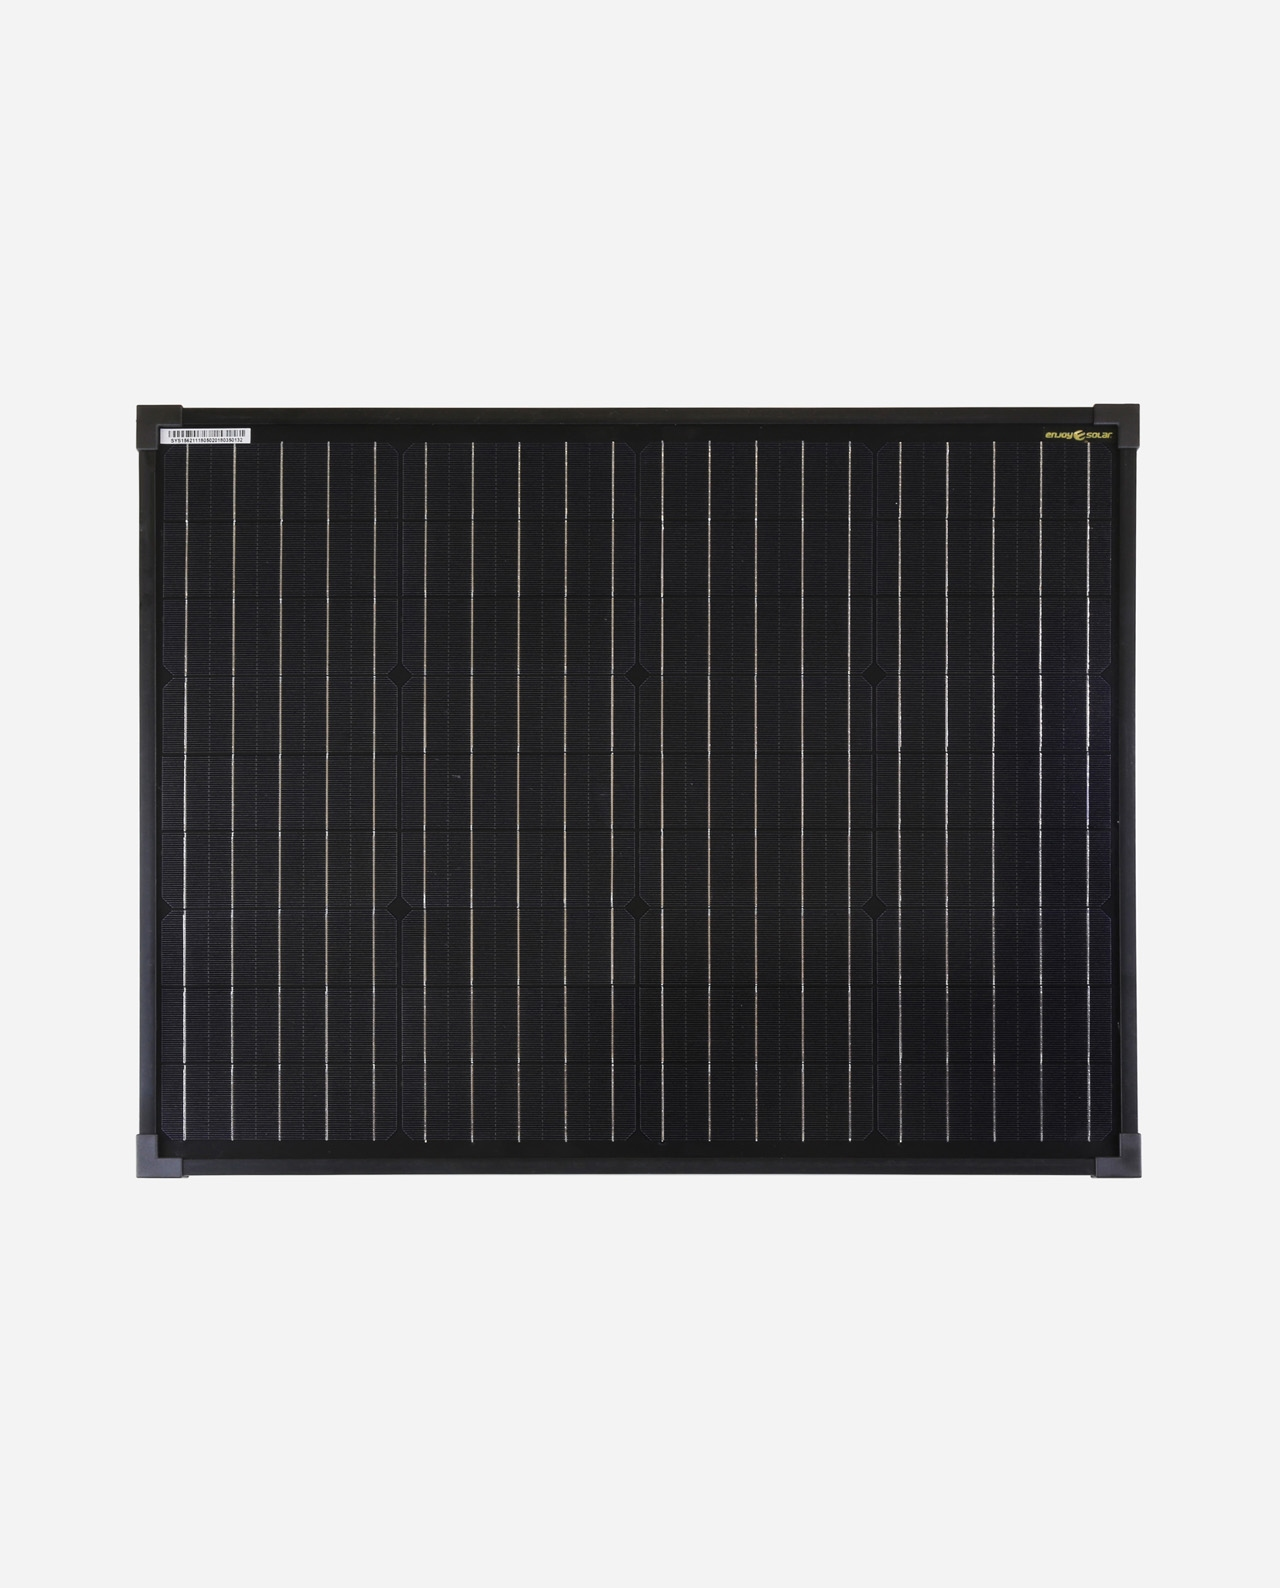 50 Watt Zonnepaneel Full Black Monokristal afm: 662x460 mm.